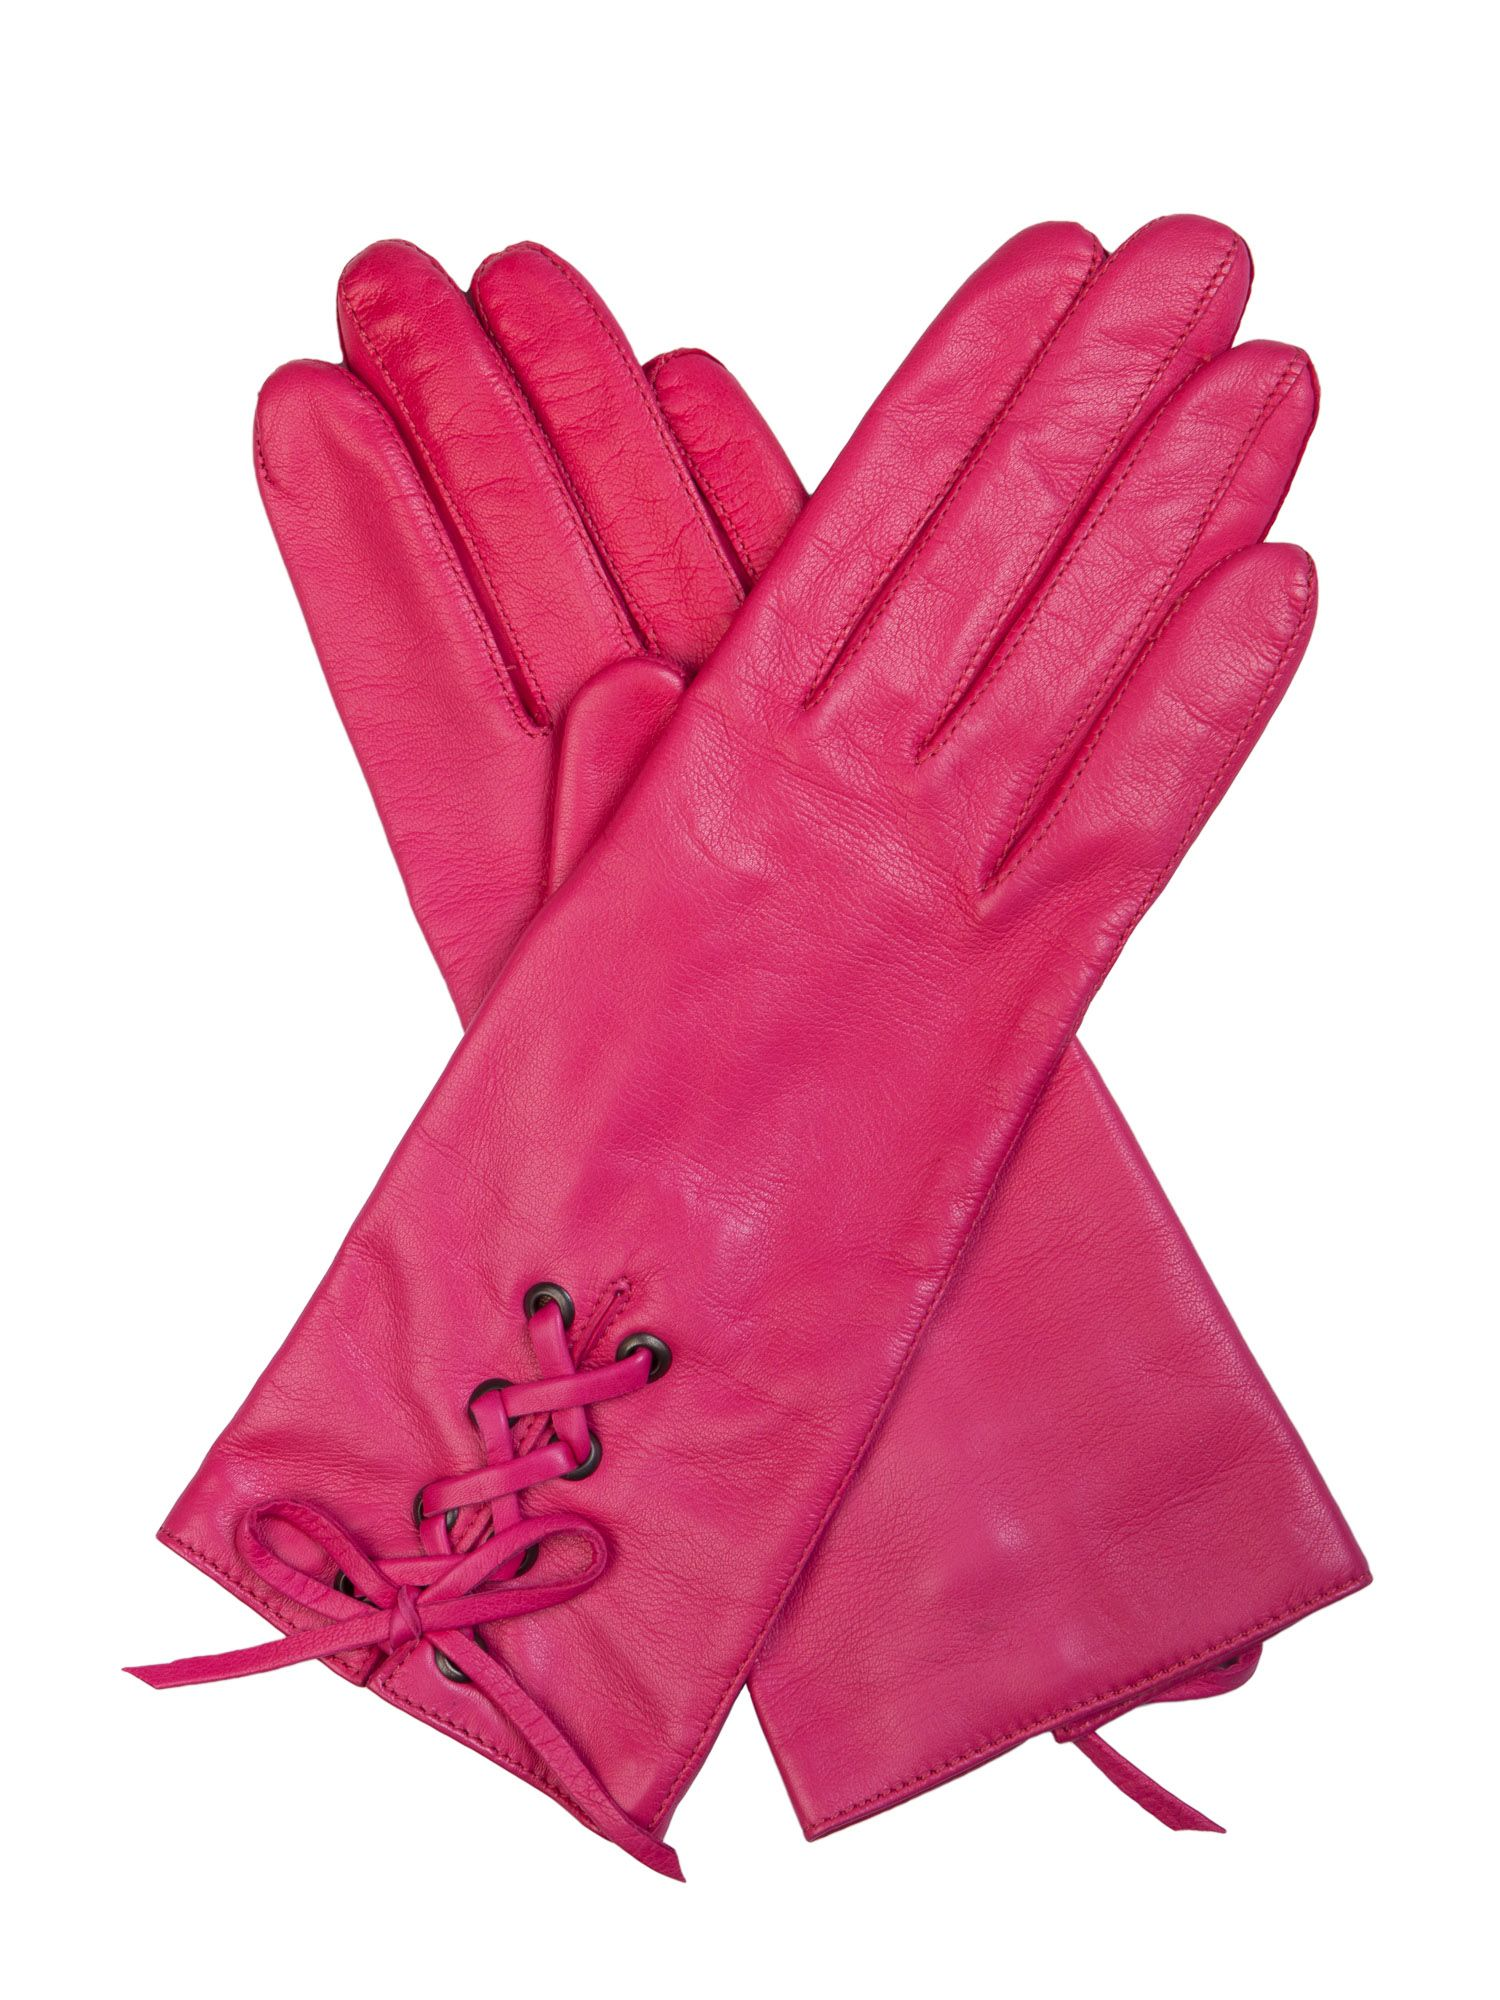 Vintage Style Gloves Cornelia James Paloma Leather Gloves £69.00 AT vintagedancer.com